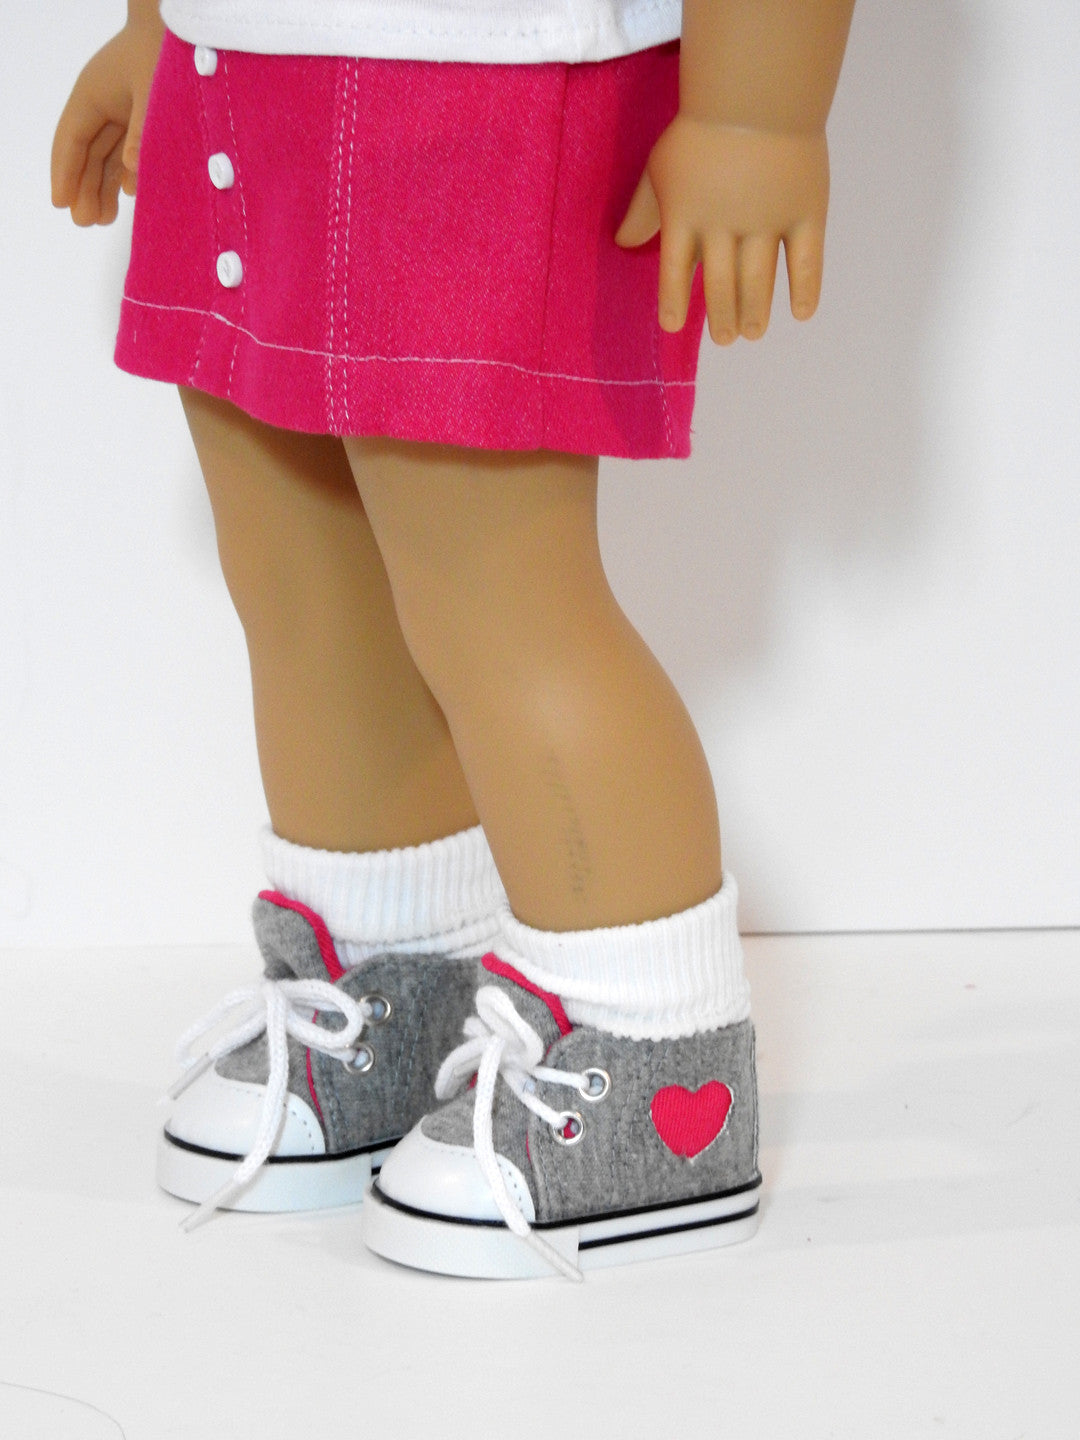 18 Inch Doll High Top Sneakers